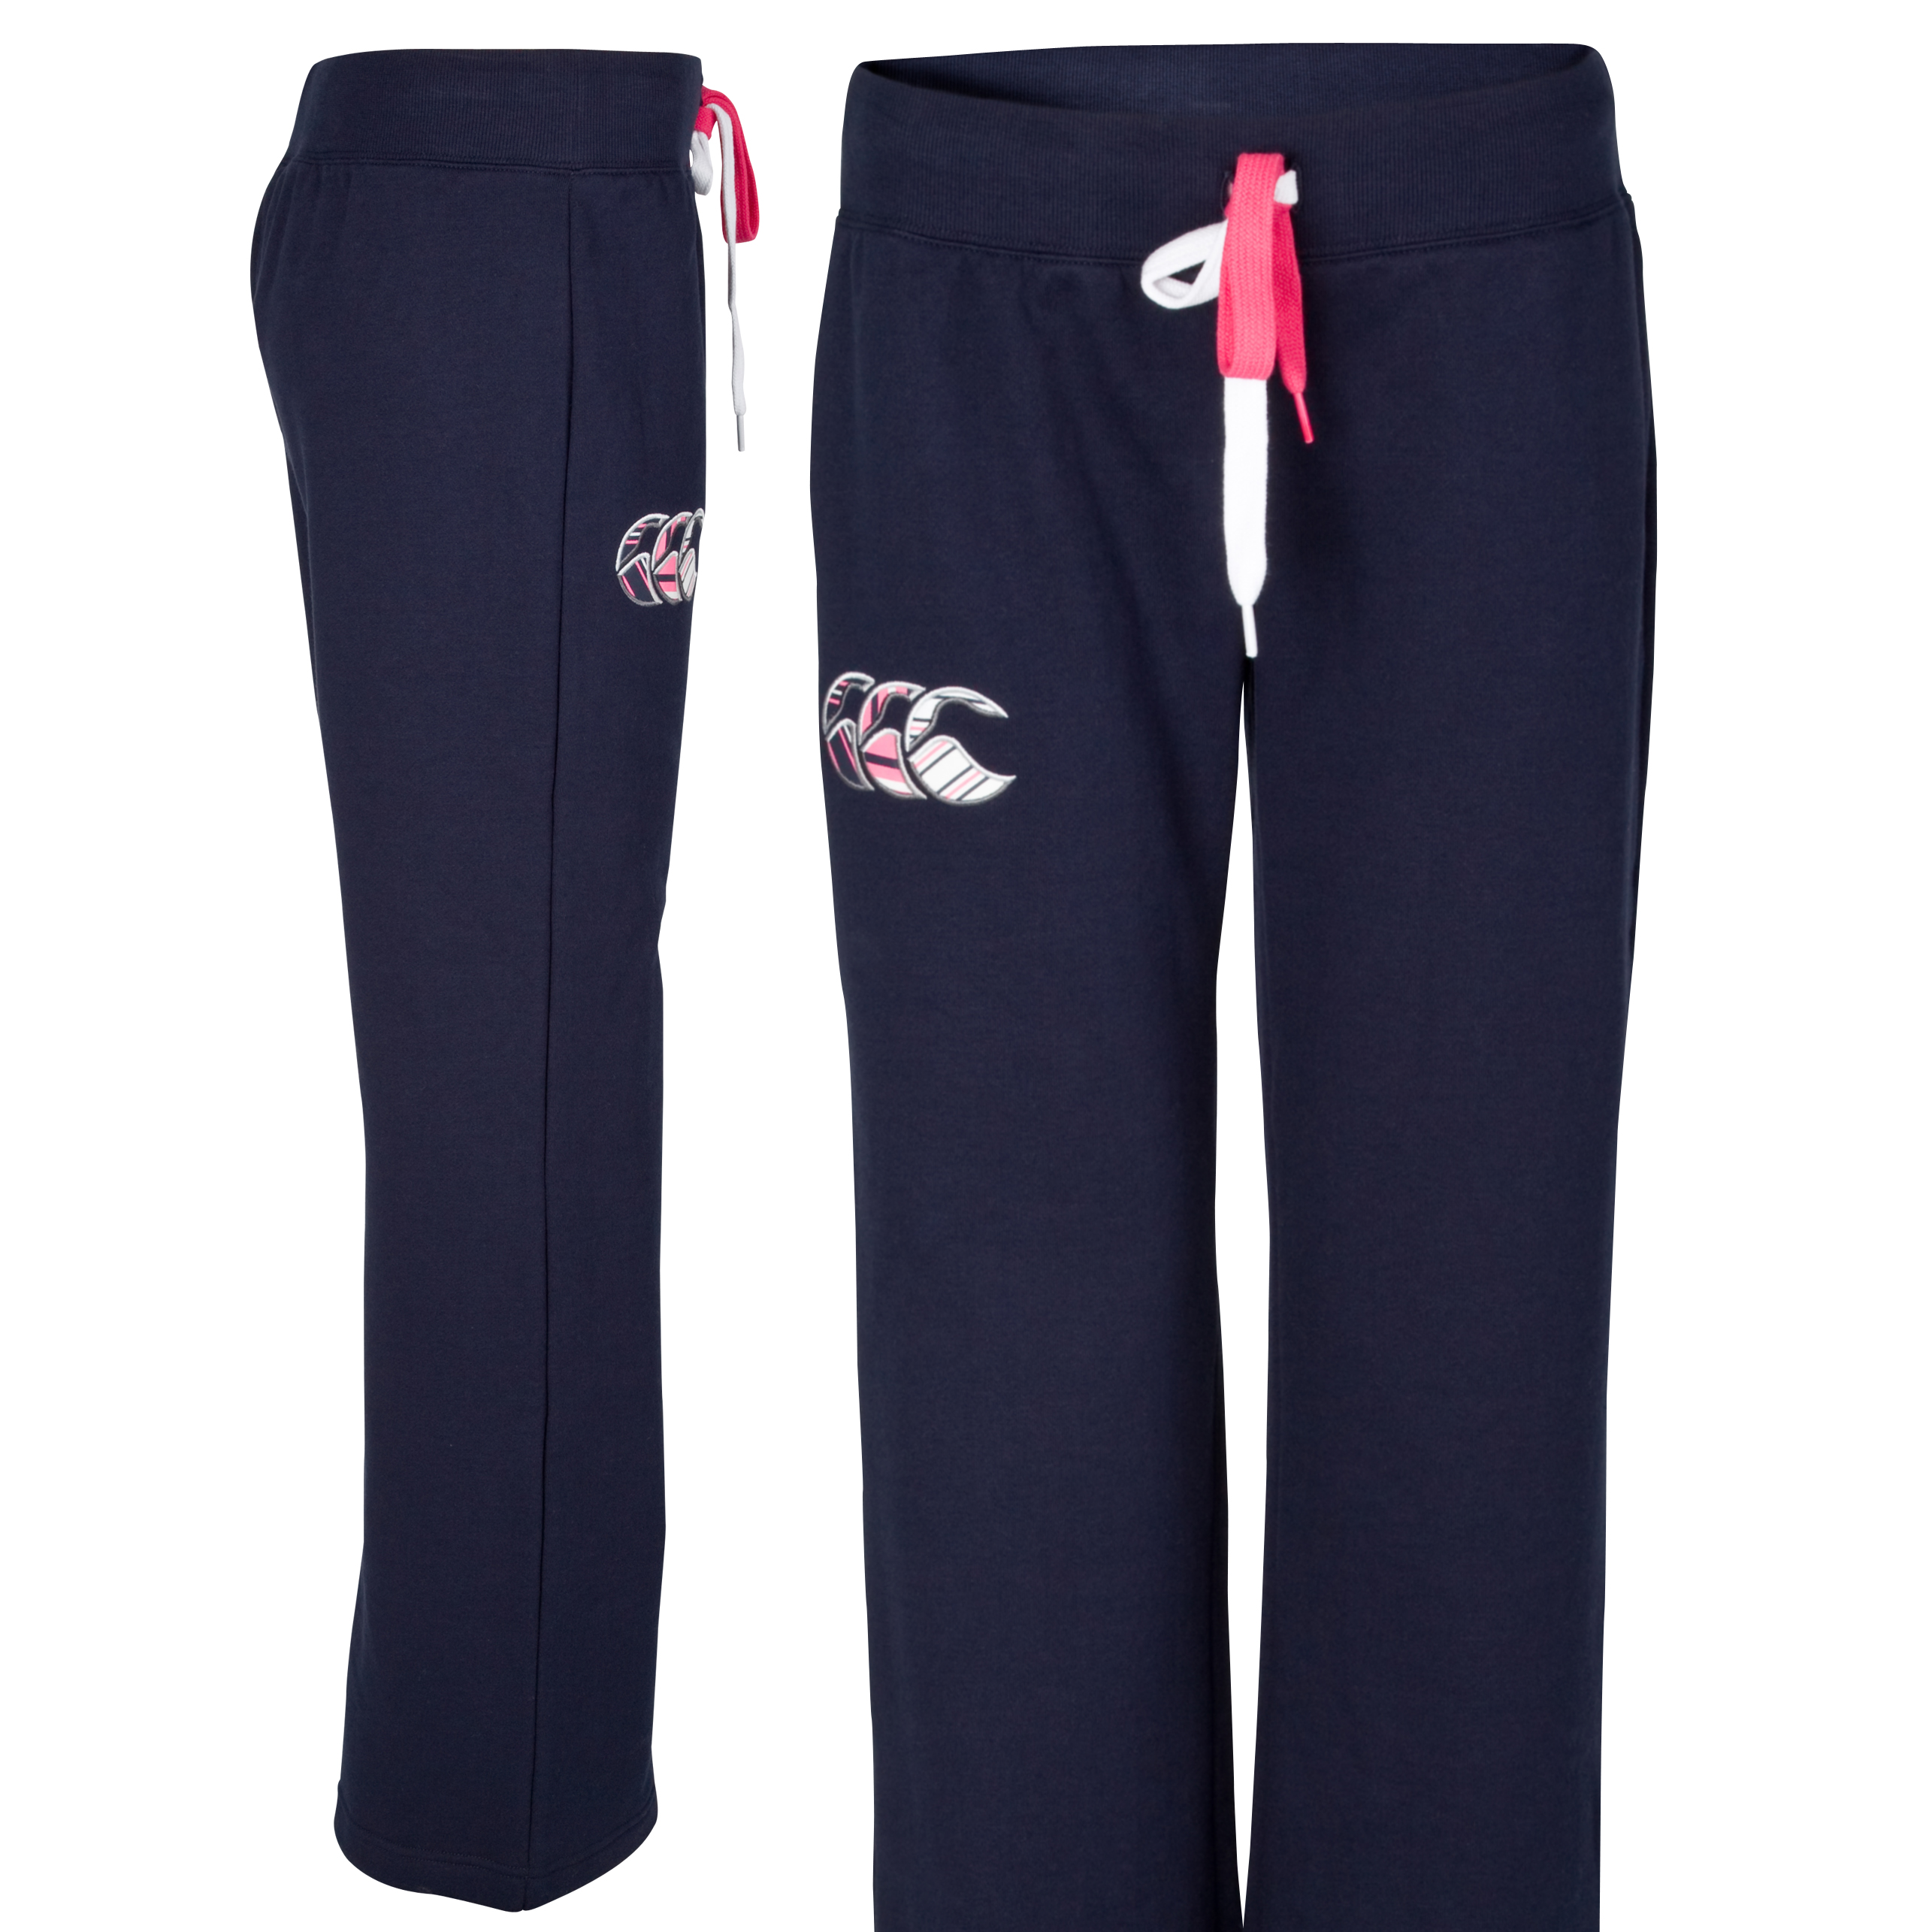 Canterbury Very Ugly Sweatpant - Navy. for 25€